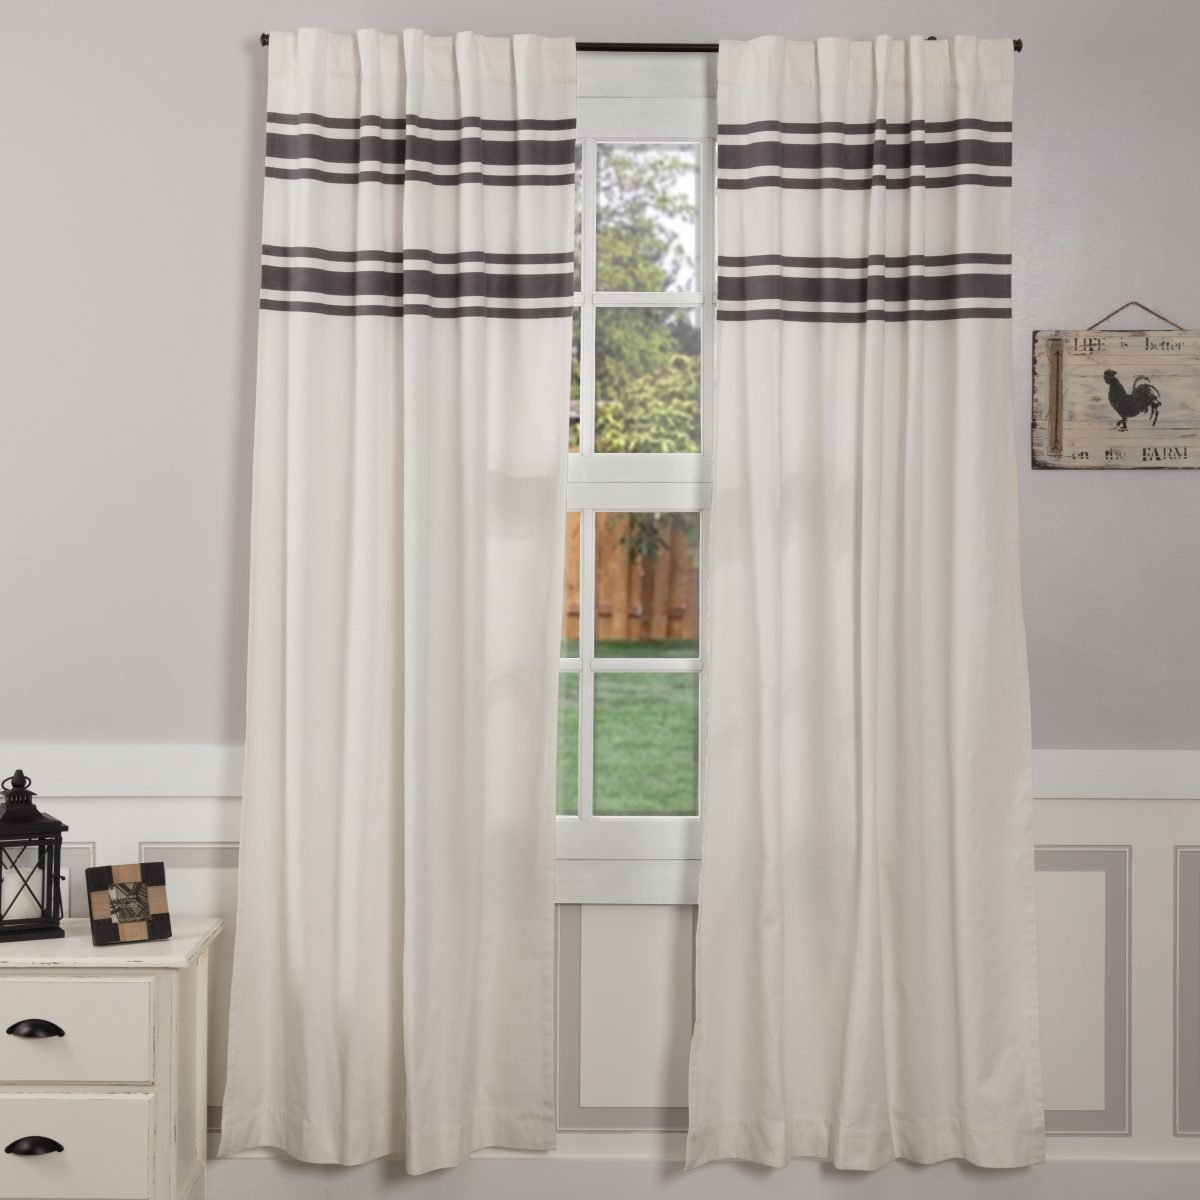 panel idea sheer home drapes designs juliet panels decoration outdoor overwhelming perfect linen for apply drapery drape curtain carousel pics to your decor canada